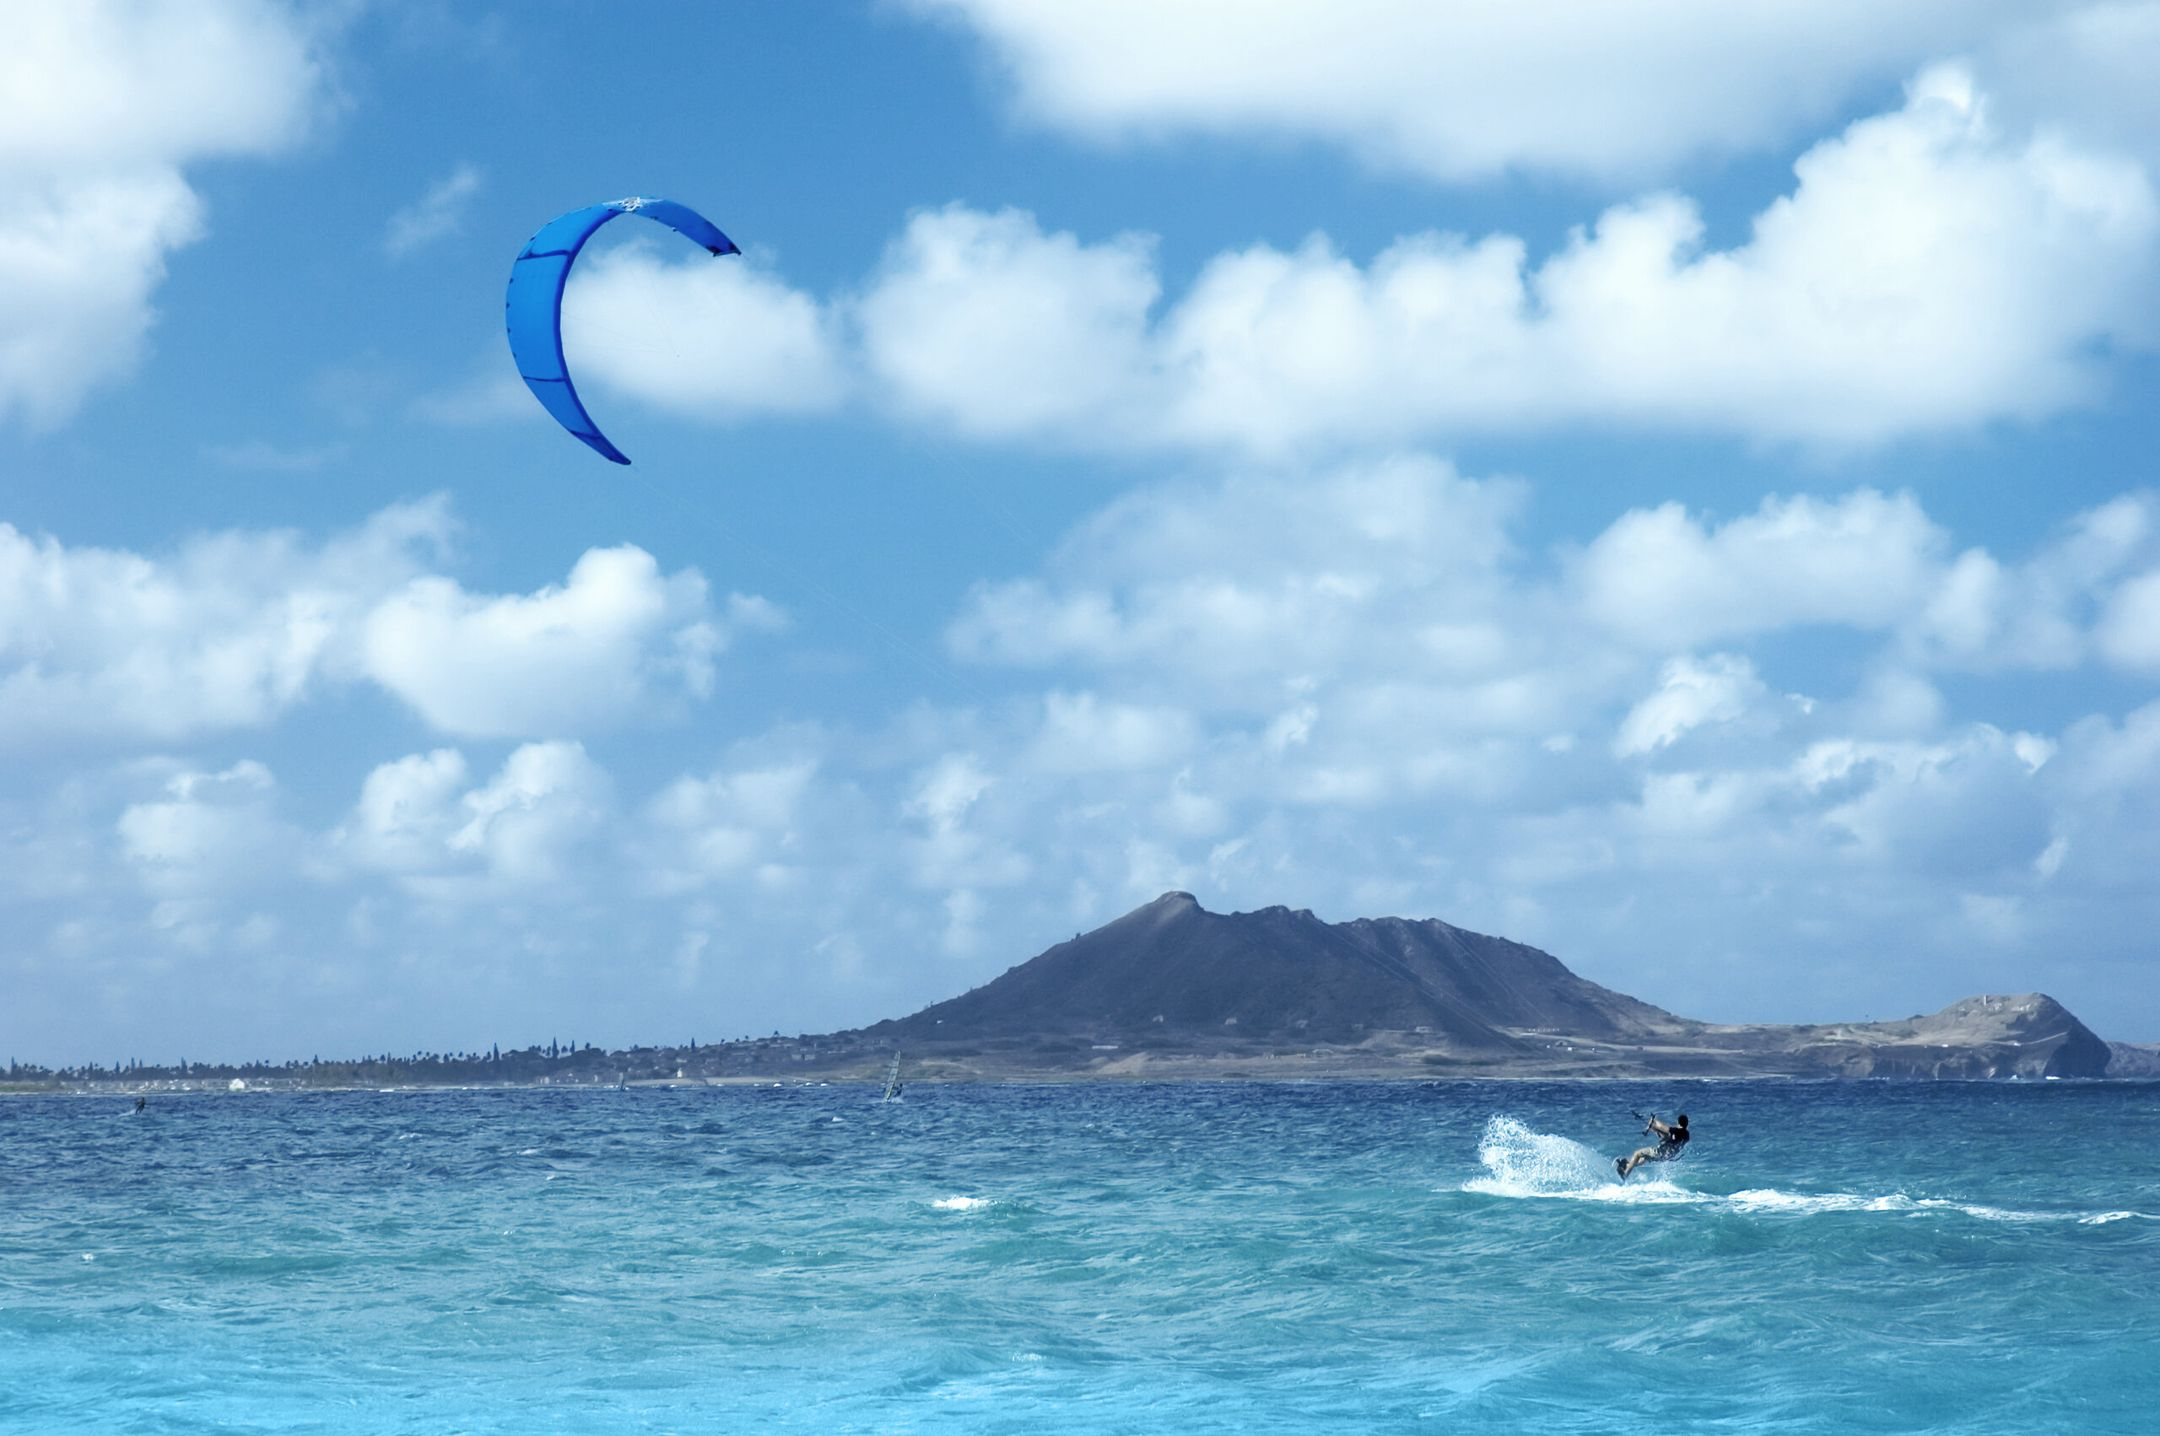 kitesurfing United States kitespot Oahu ripatrip travel big